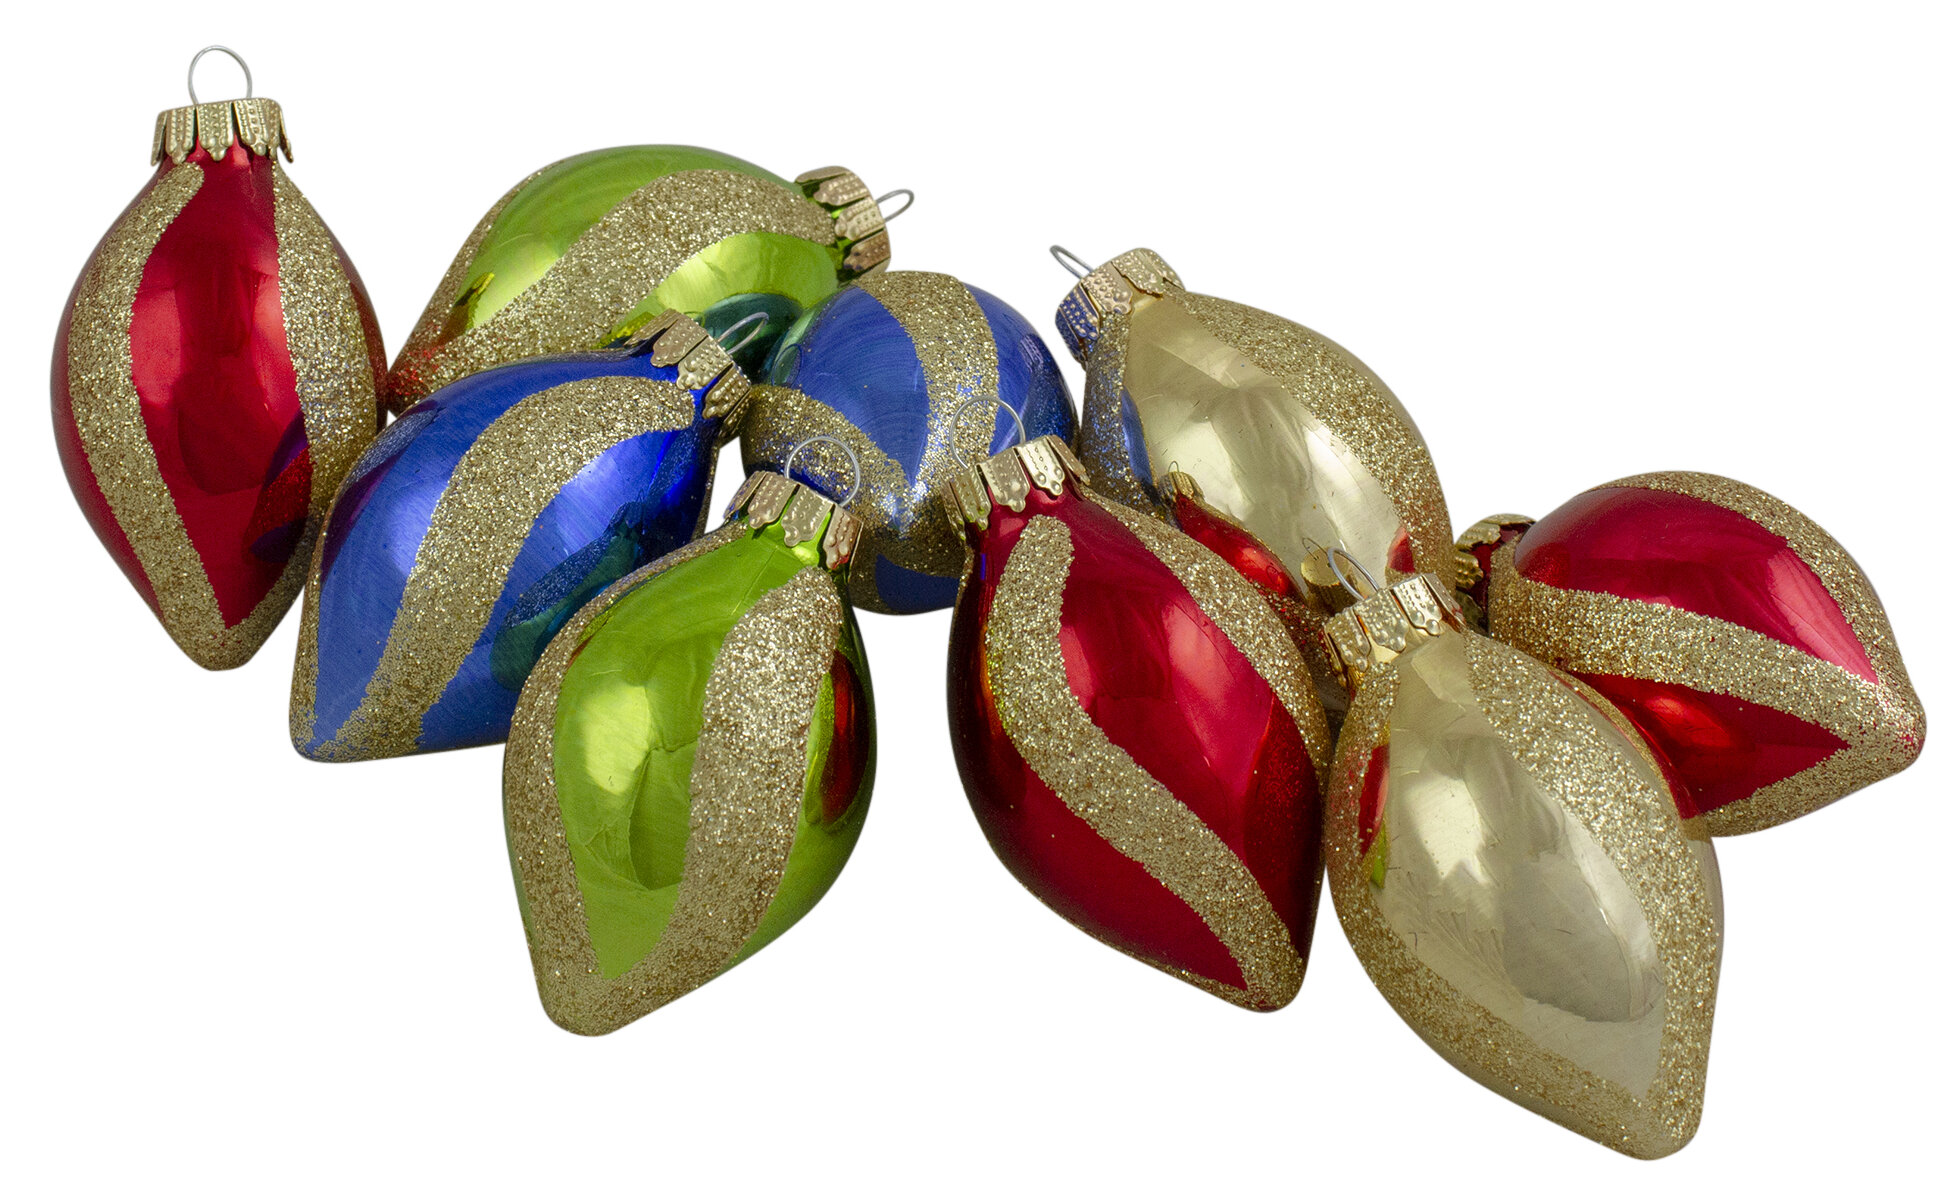 200Ct Multi Color With Glitter Swirls Finial Glass Christmas Ornament Set 20